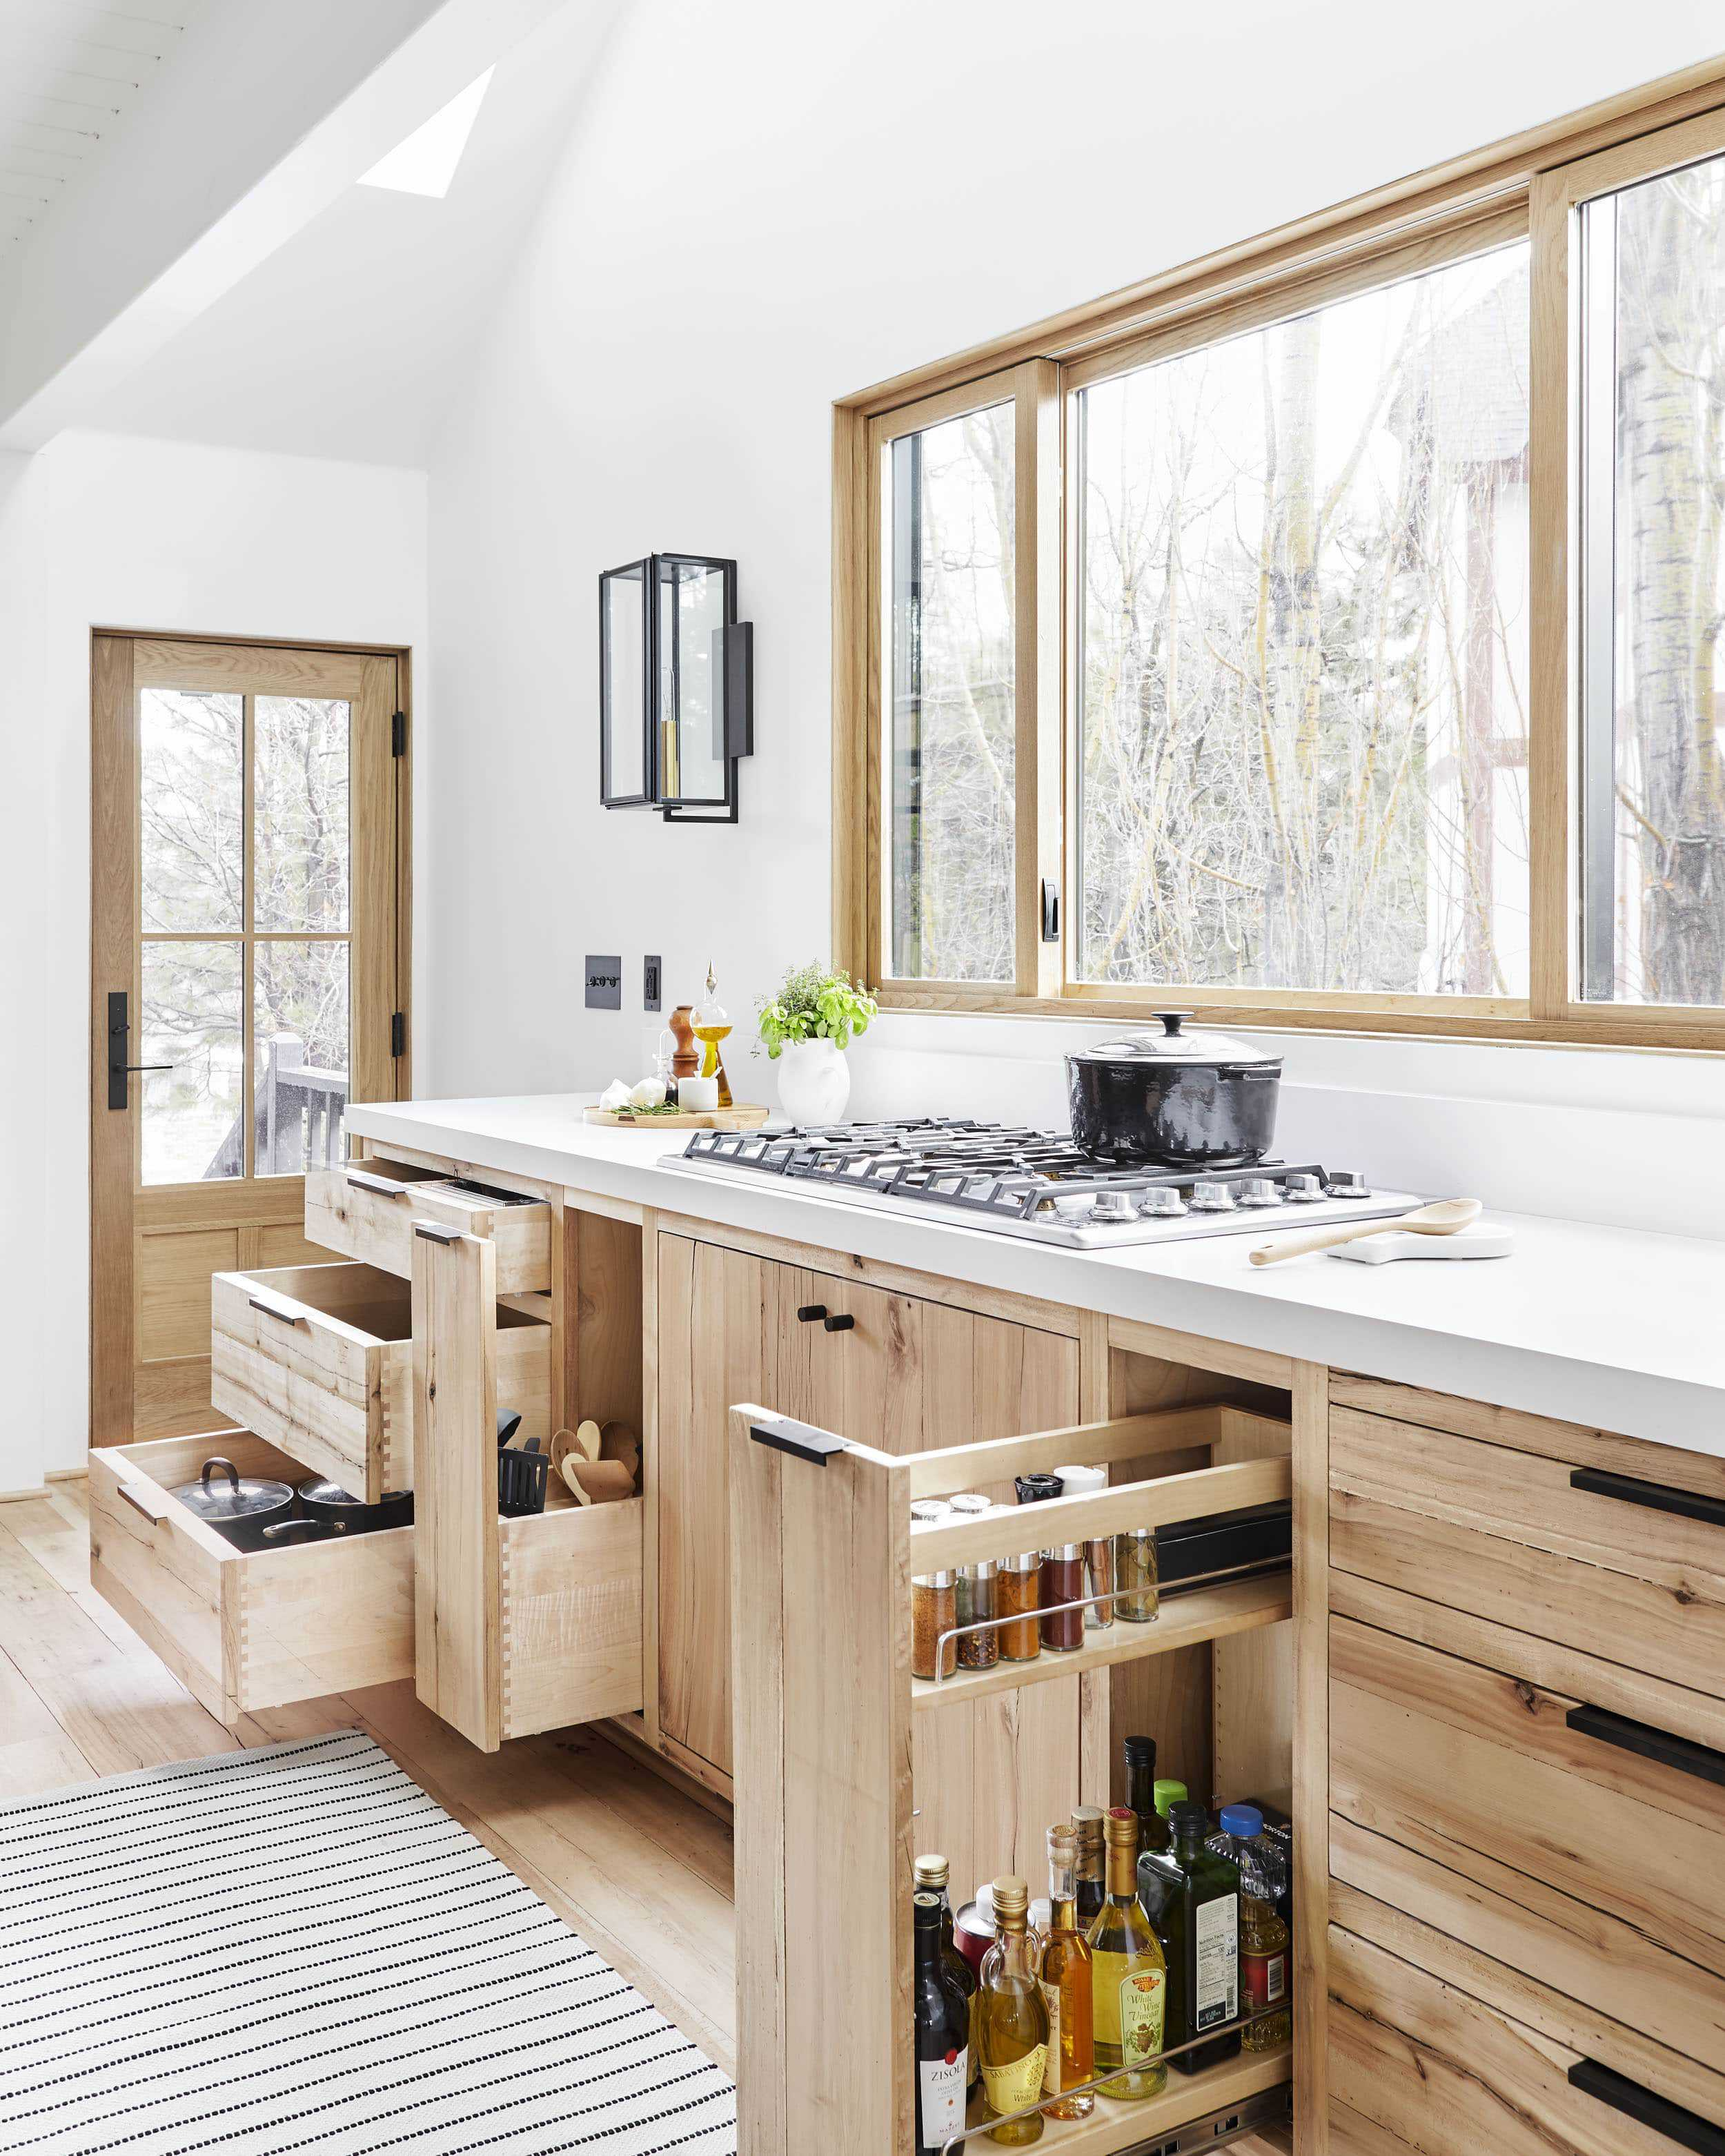 cabinets in the mountain house kitchen